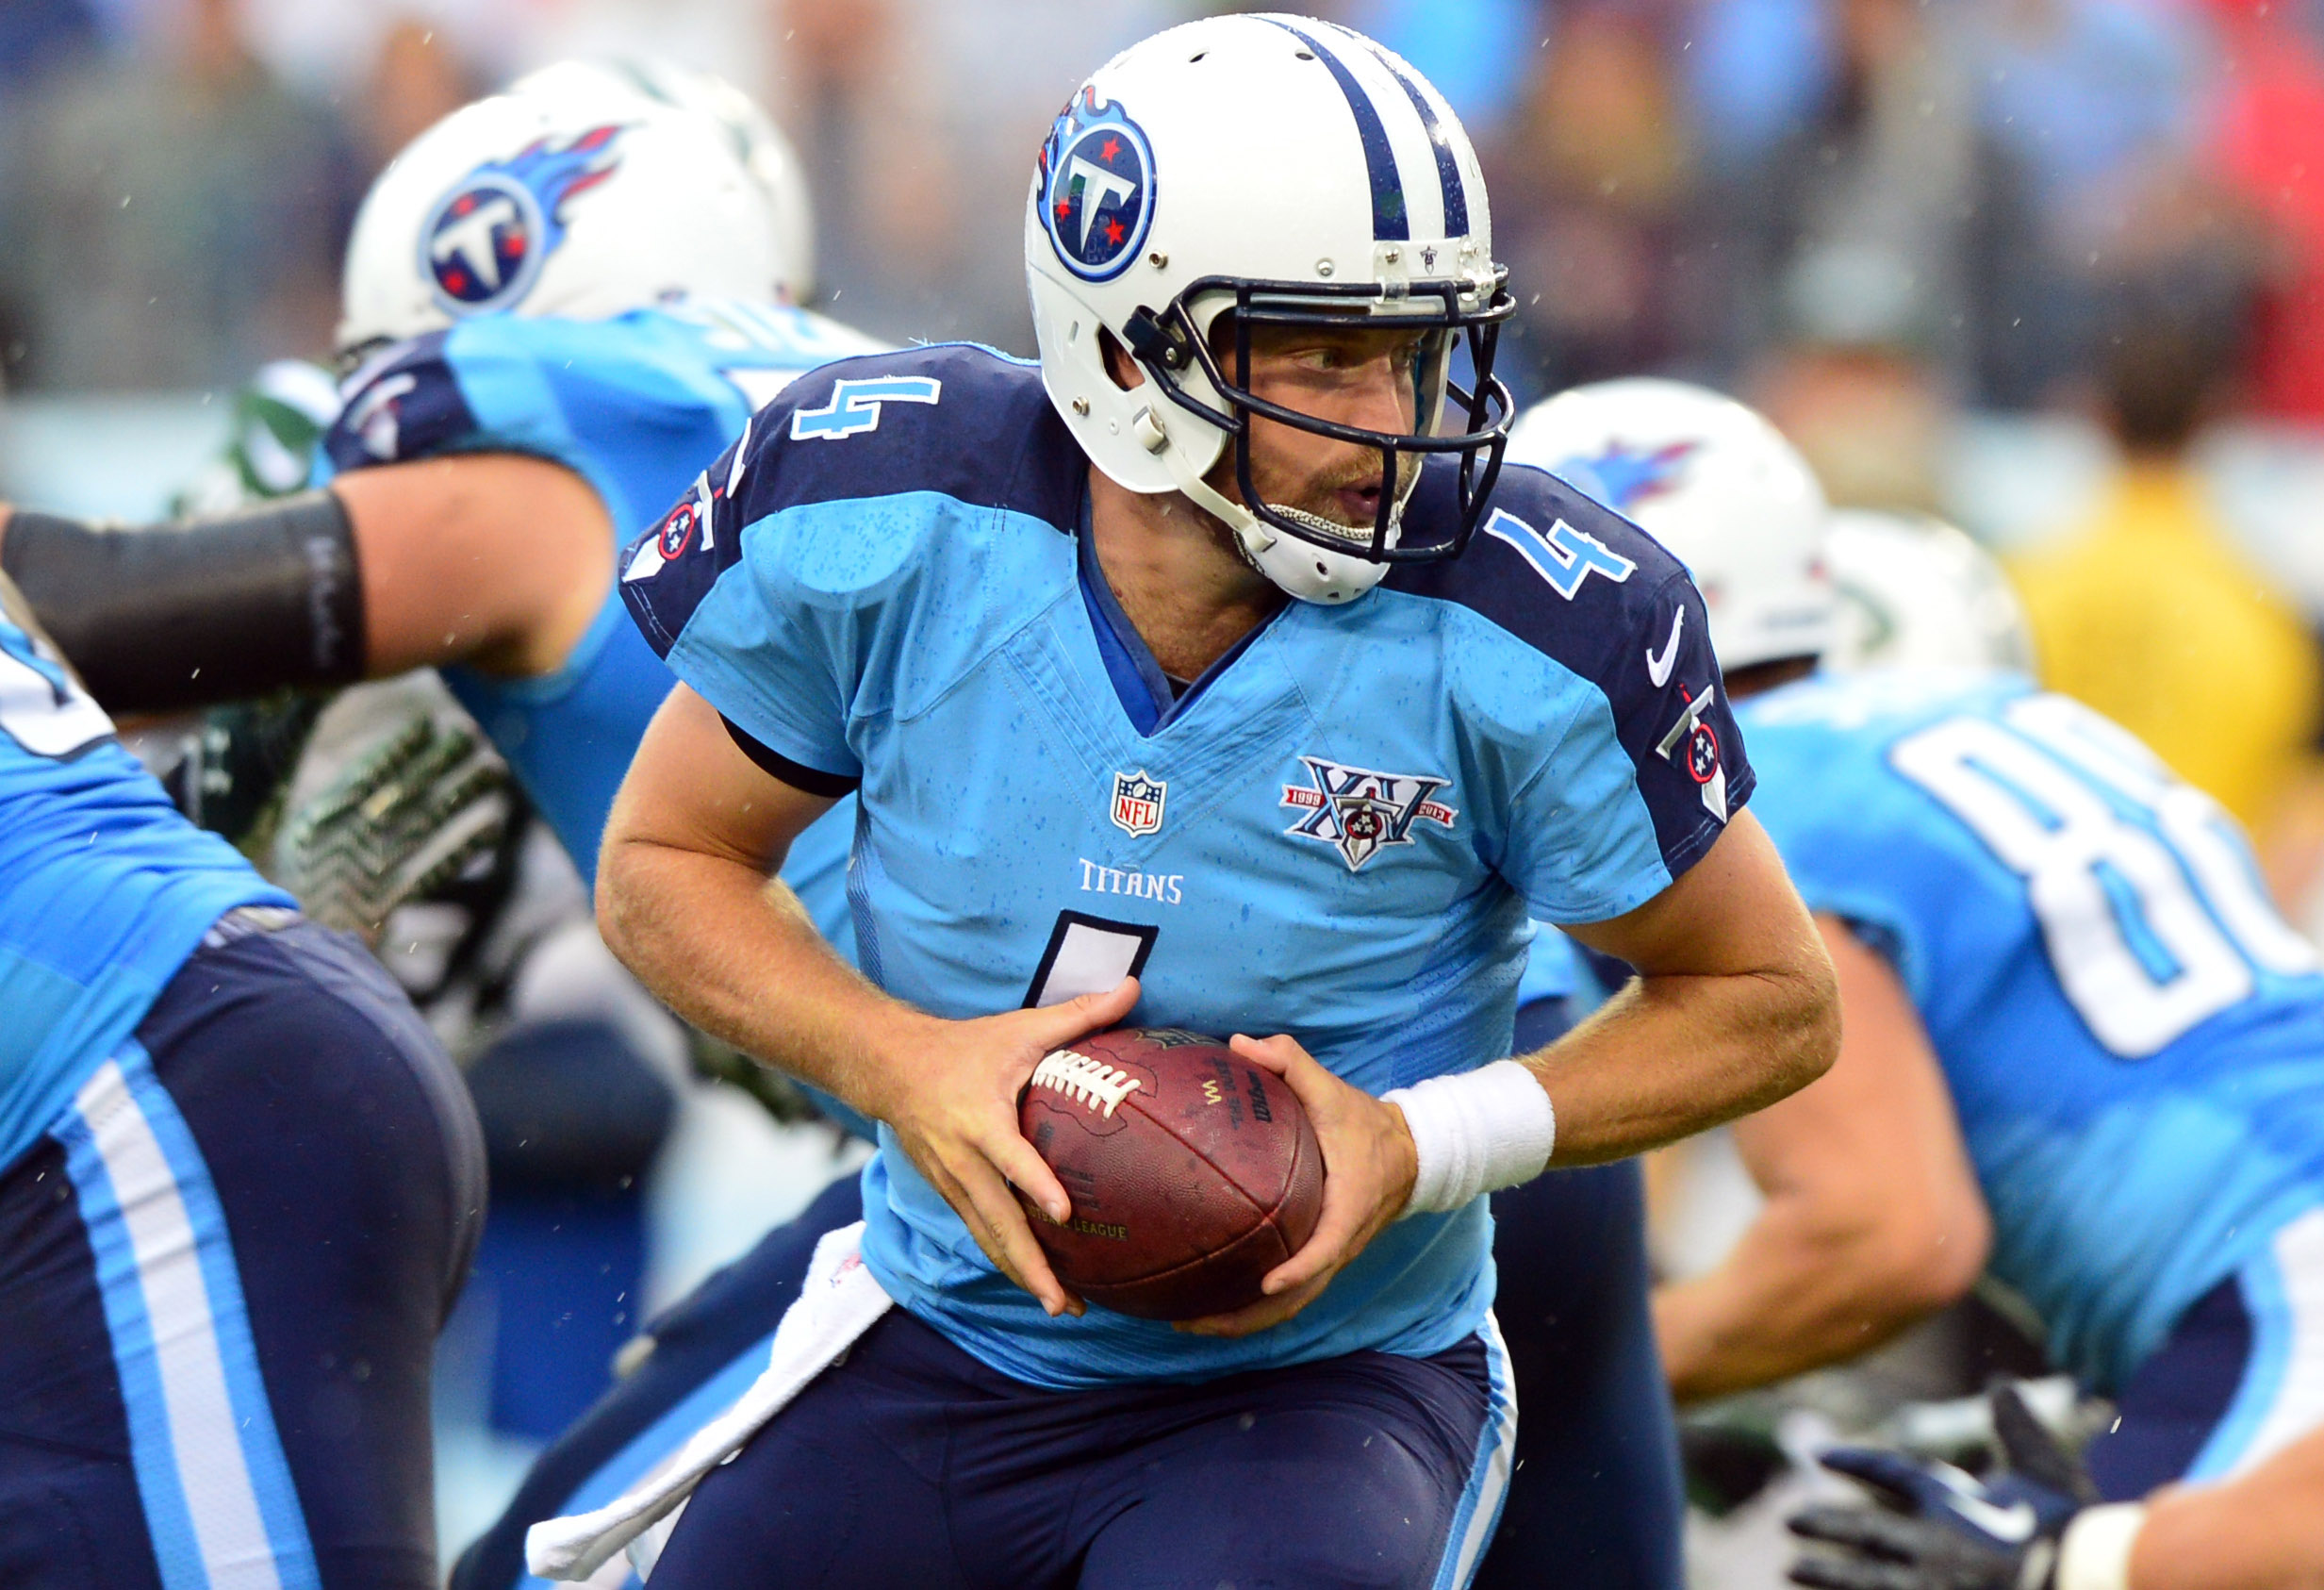 Top 10 highest paid backup quarterbacks in the nfl for 2013 2014